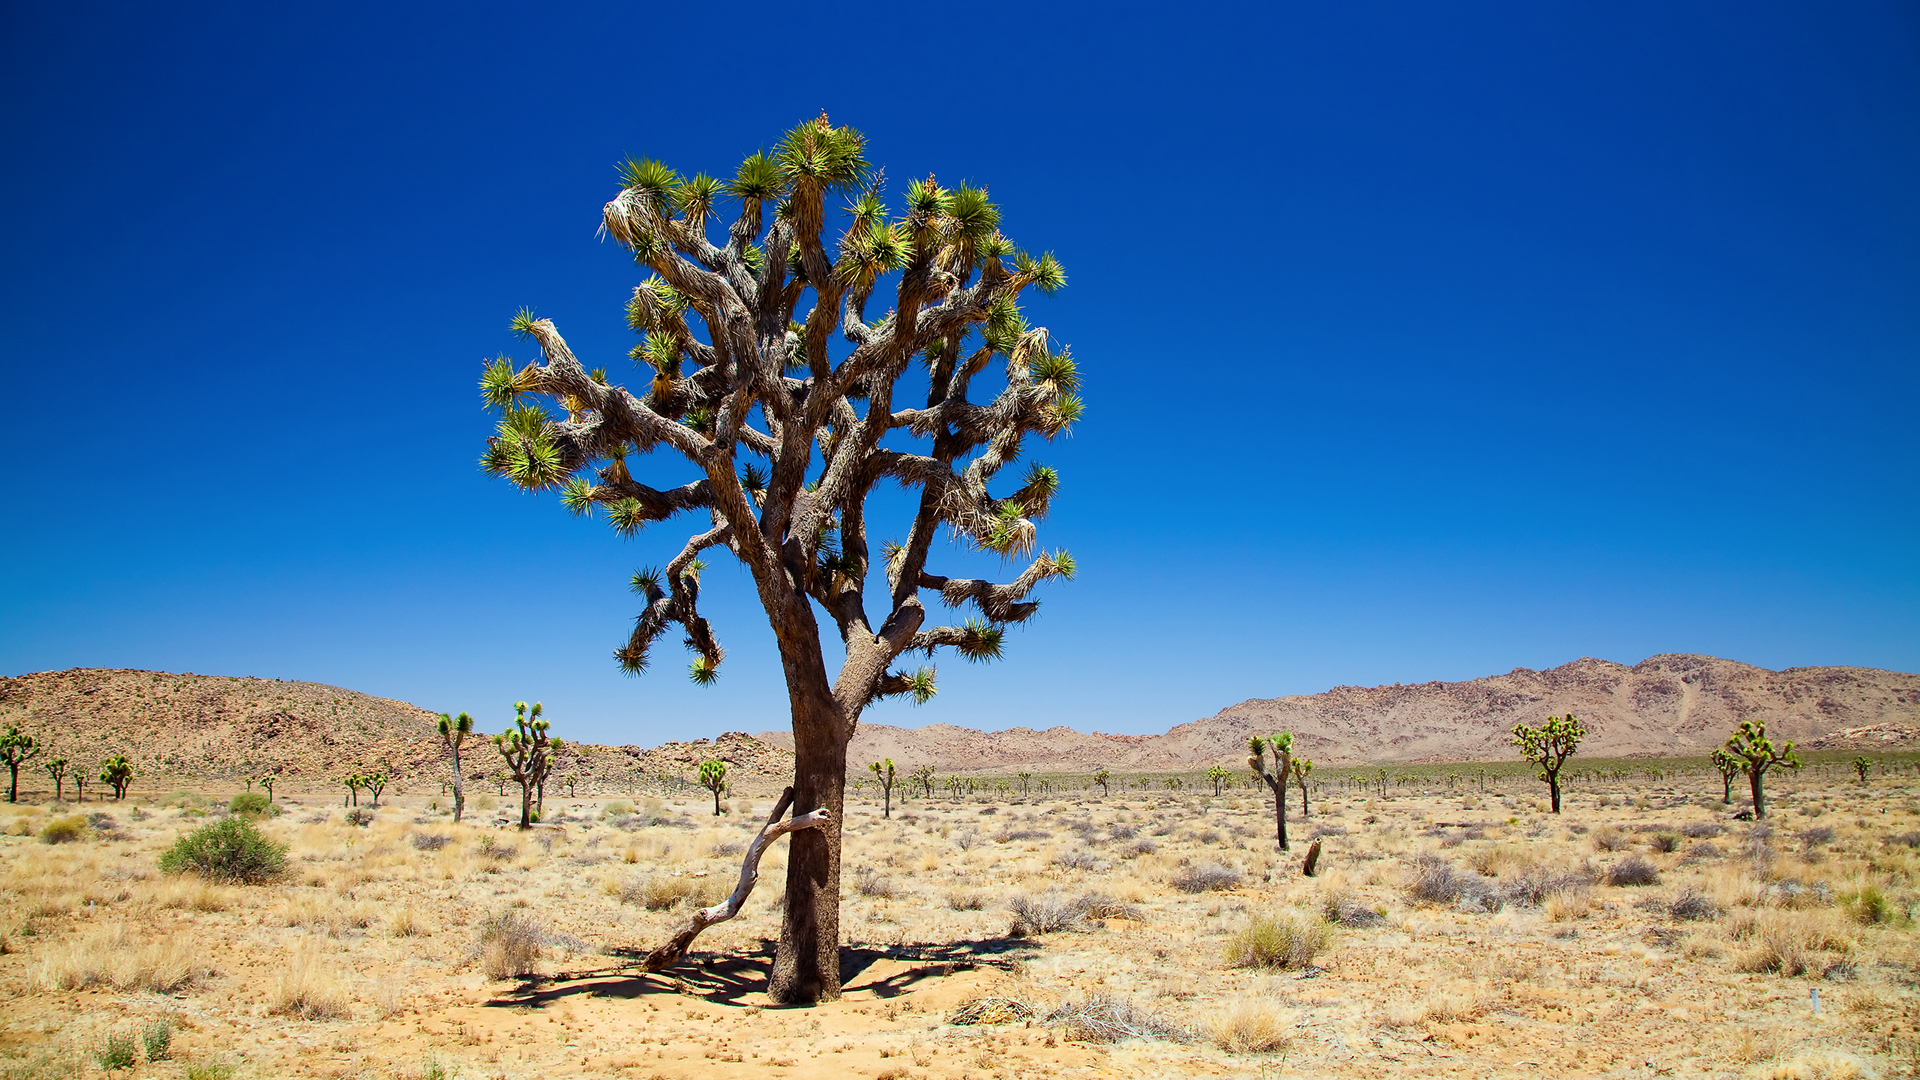 joshuatree HD Wallpaper